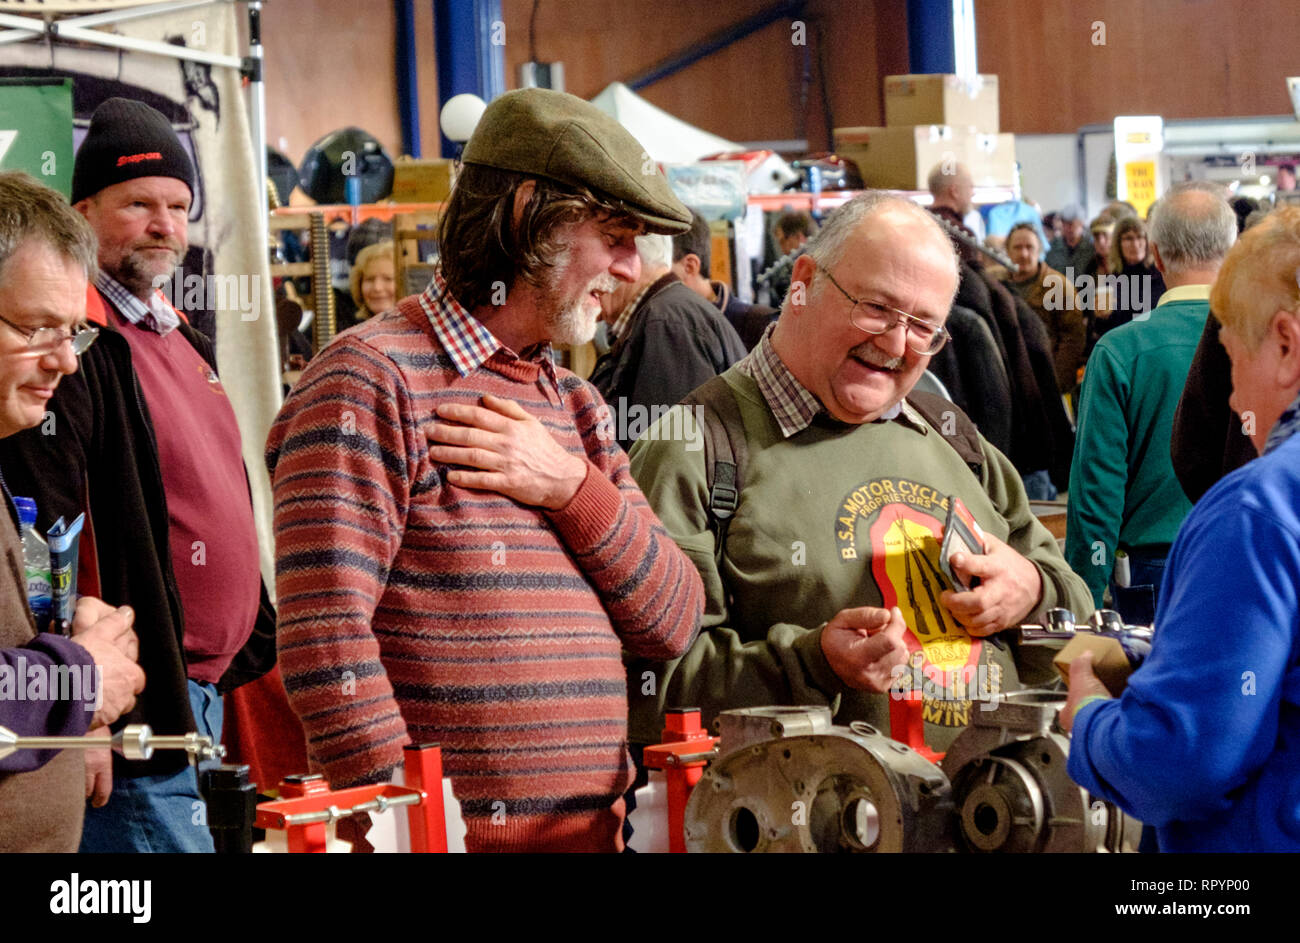 shepton-mallet-somerset-uk-23rd-feb-2109-motorcycle-enthusiasts-gather-for-the-first-day-of-the-39th-carol-nash-classic-motorcycle-show-trade-stands-and-individuals-showed-off-their-two-wheeled-treasures-the-phrase-i-had-one-like-that-was-overheard-many-times-as-the-friendly-and-welcoming-atmosphere-revved-up-the-nostalgia-alamy-live-news-mr-standfast-credit-mr-standfastalamy-live-news-RPYP00.jpg